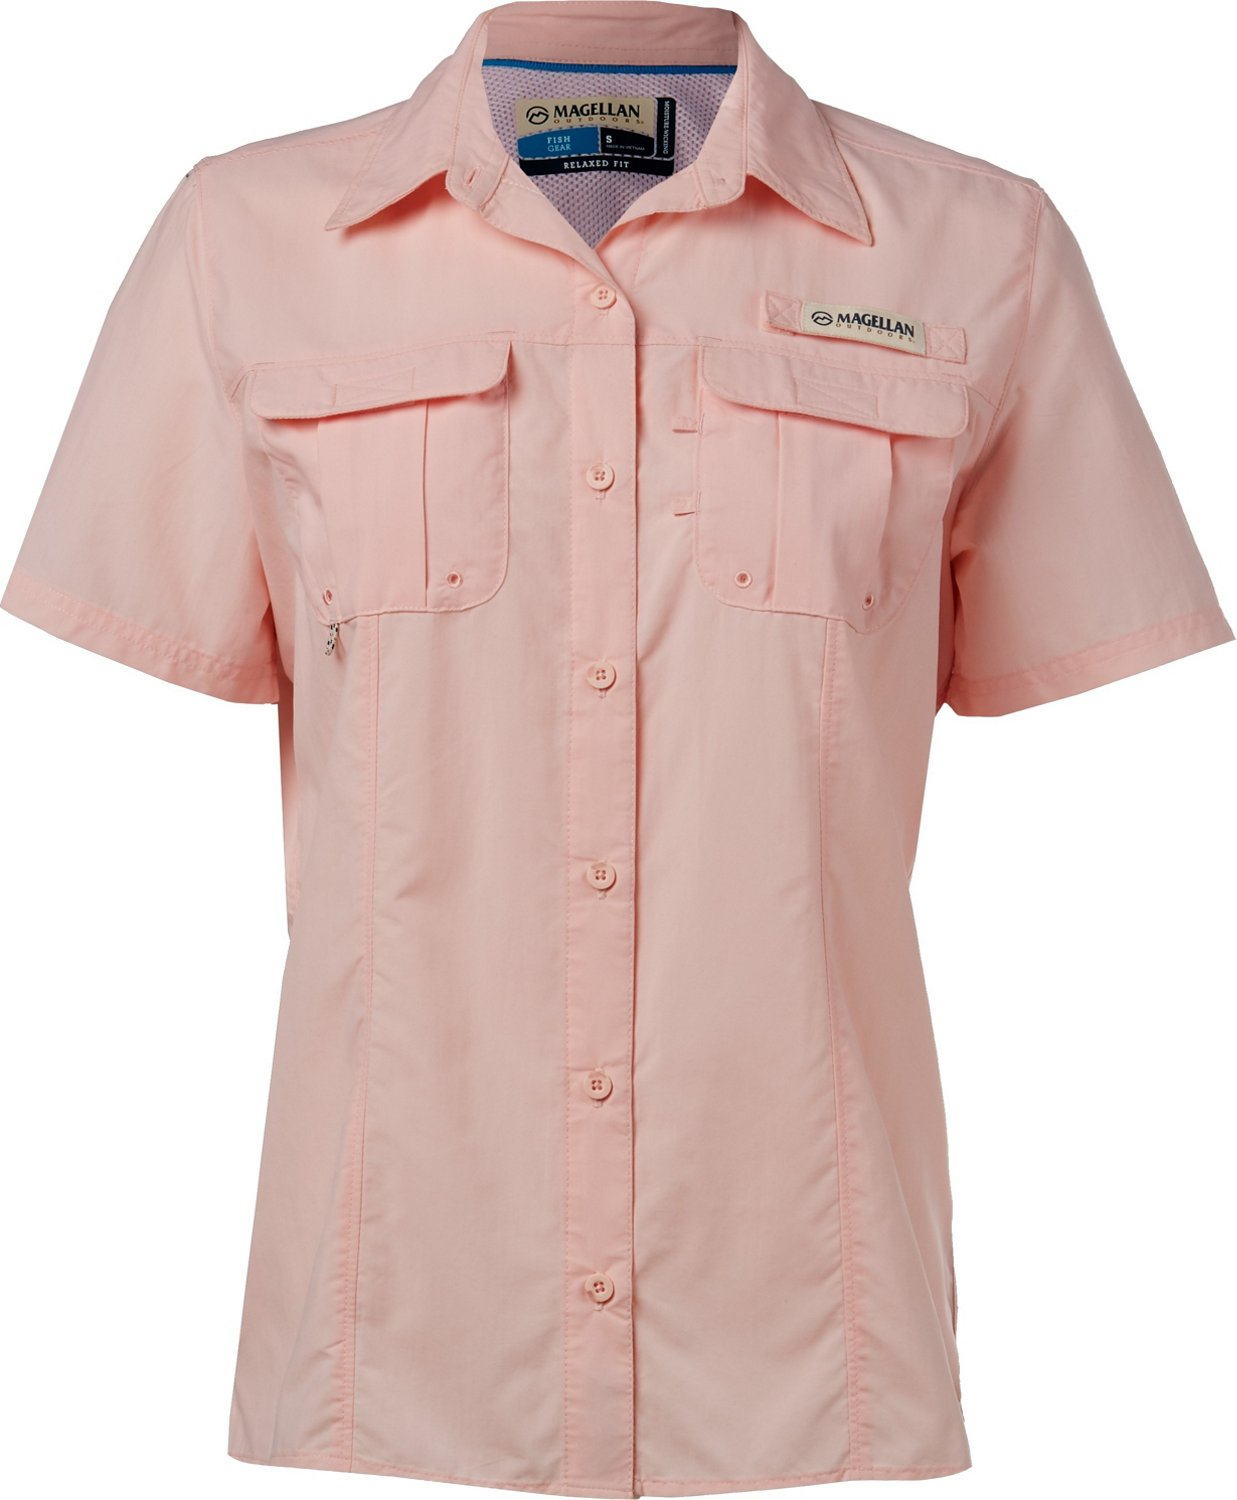 9868ed36e58b27 Display product reviews for Magellan Outdoors Women's Laguna Madre Fishing  Shirt